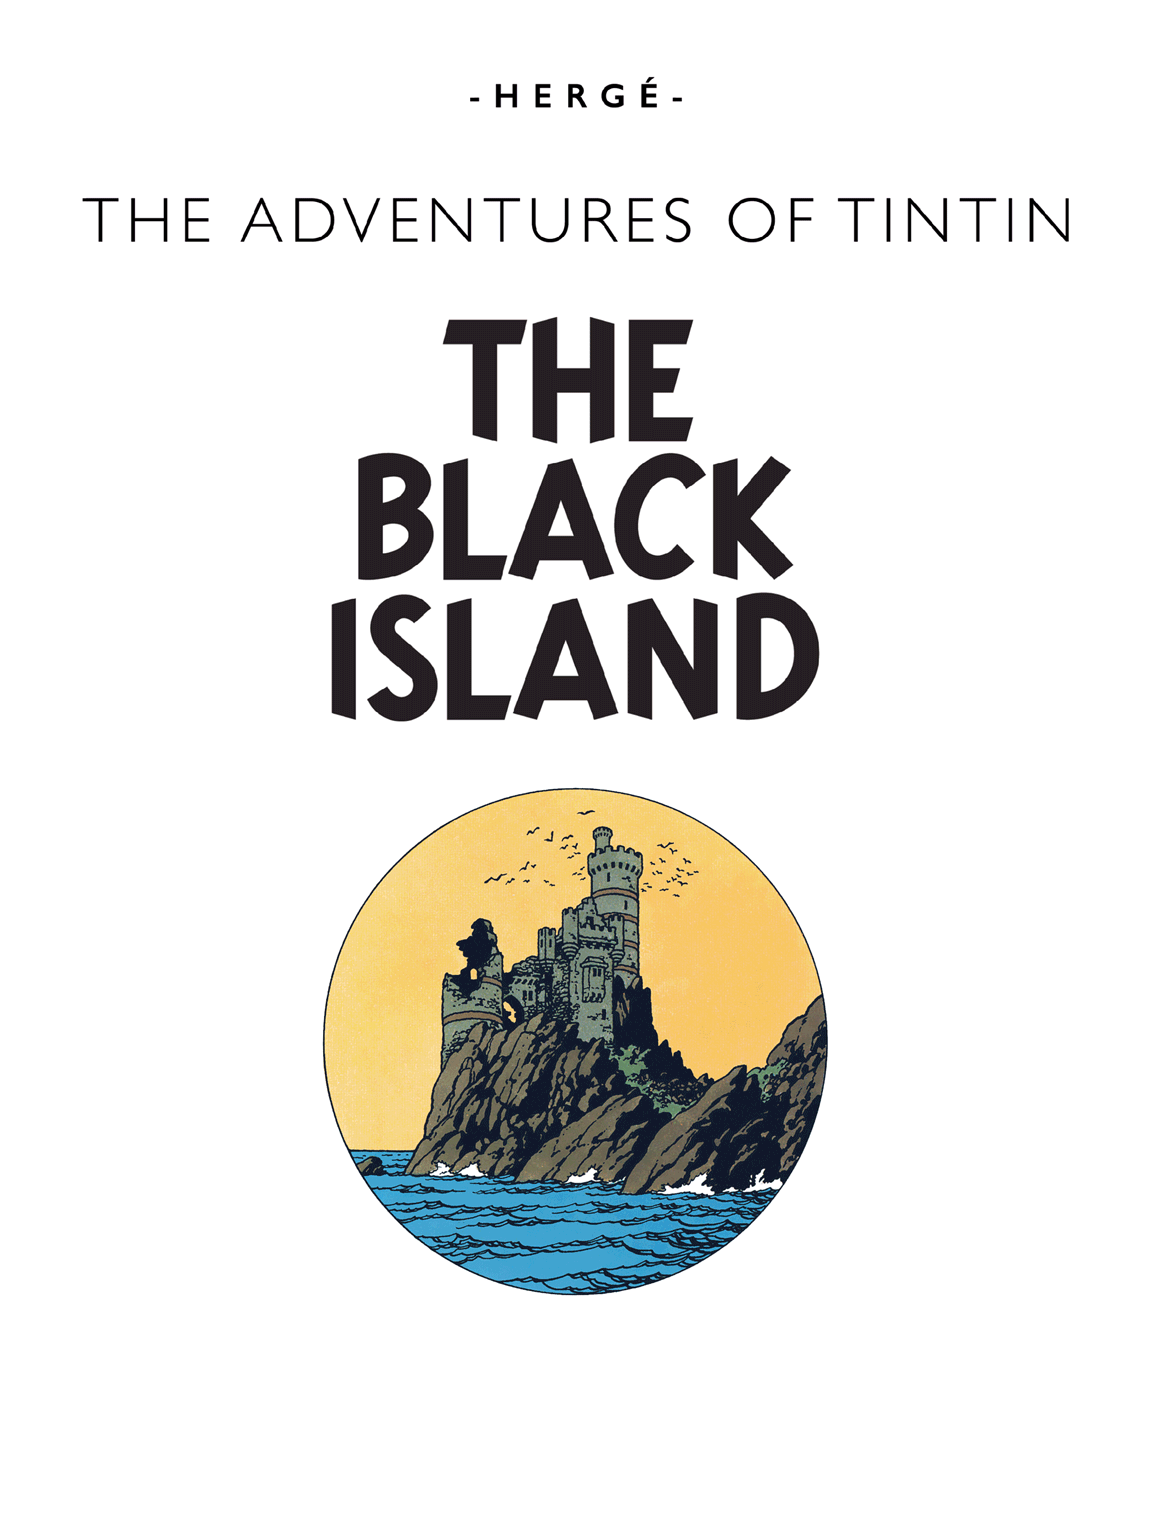 The Black Island - Title page